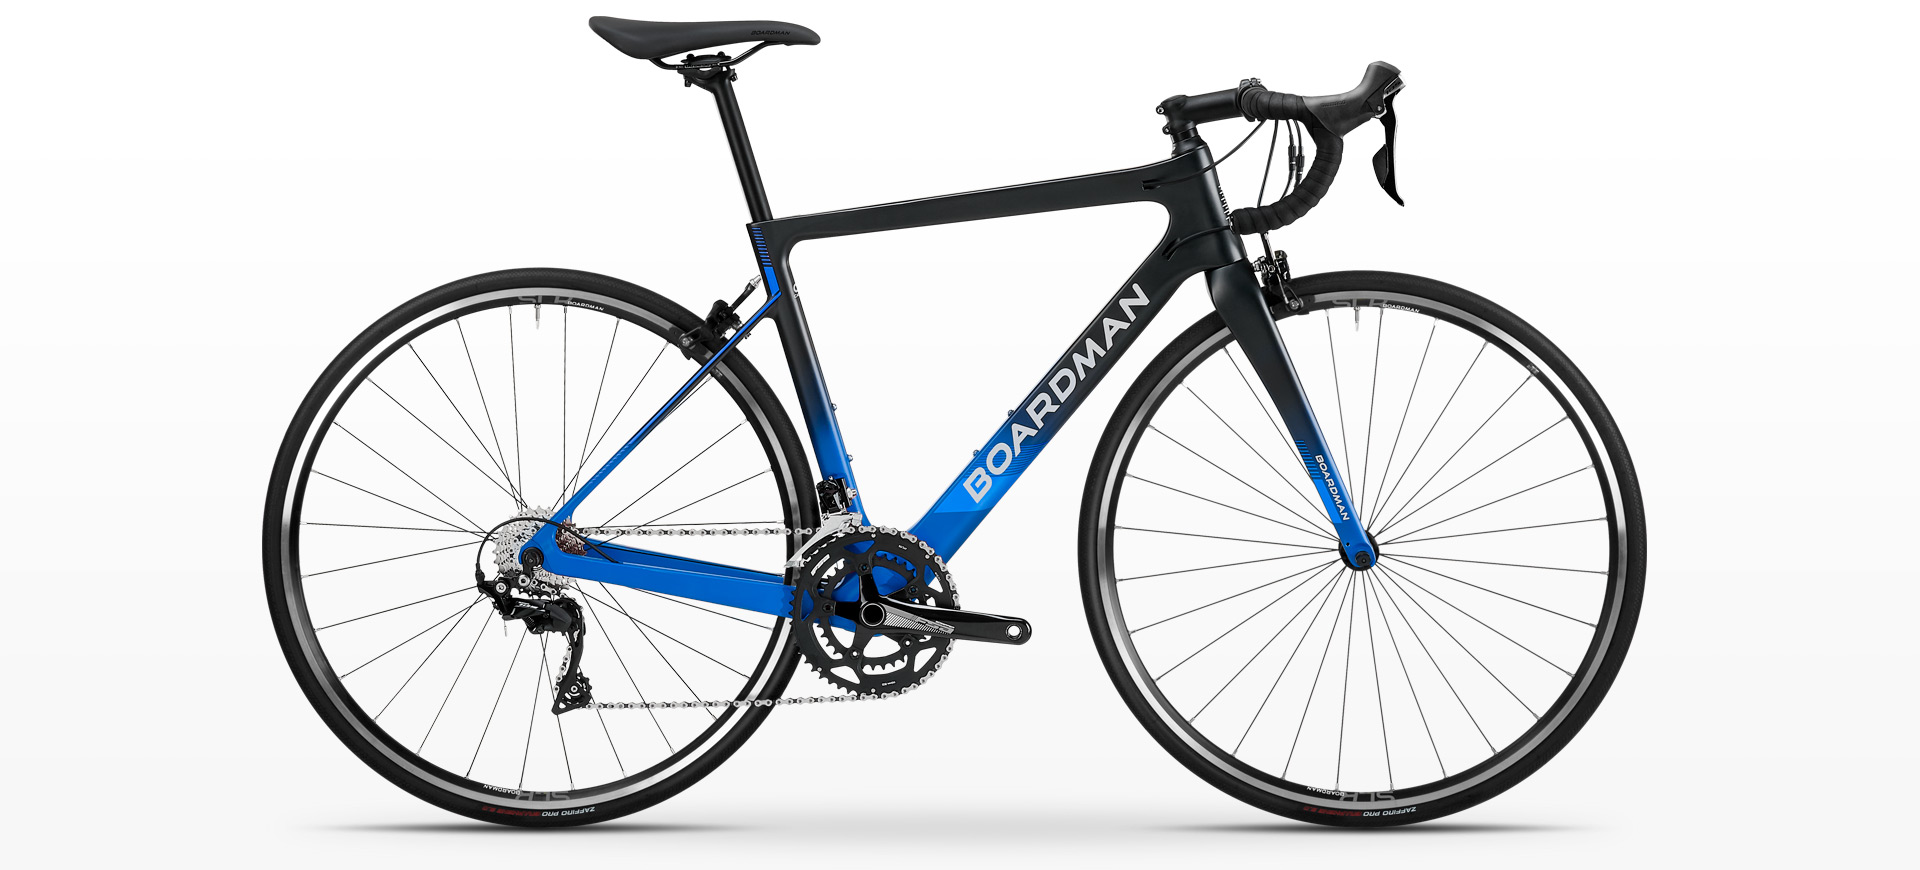 Boardman SLR 8.9 Carbon Road Bike in Blue Fade